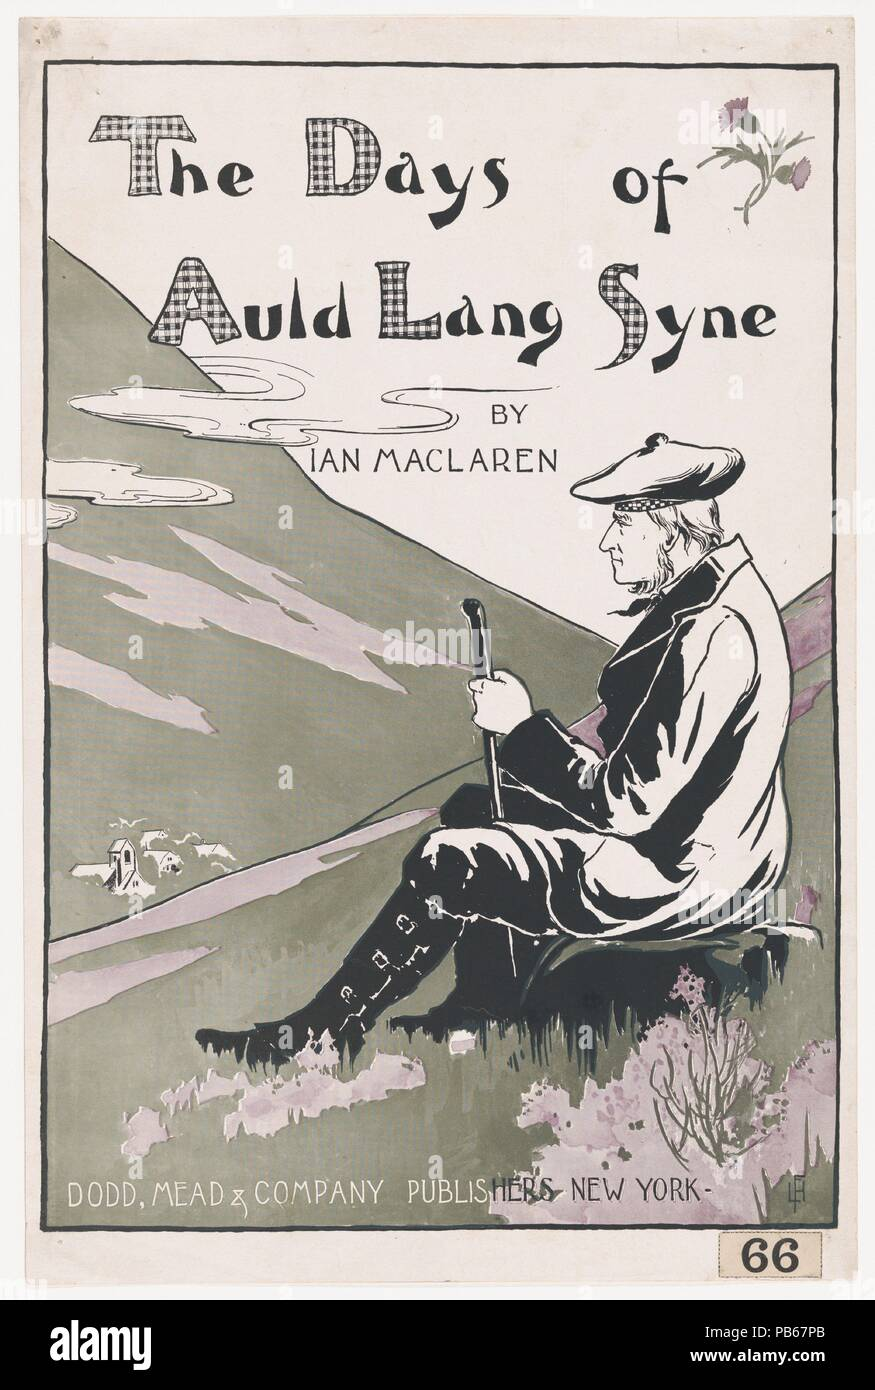 The Days of Auld Lang Syne. Artist: L. F. Hurd (American, active 1890s). Dimensions: Sheet: 18 1/4 × 12 1/16 in. (46.3 × 30.6 cm)  Image: 16 13/16 × 11 1/2 in. (42.7 × 29.2 cm). Publisher: Dodd, Mead & Co.. Date: 1895. Museum: Metropolitan Museum of Art, New York, USA. - Stock Image